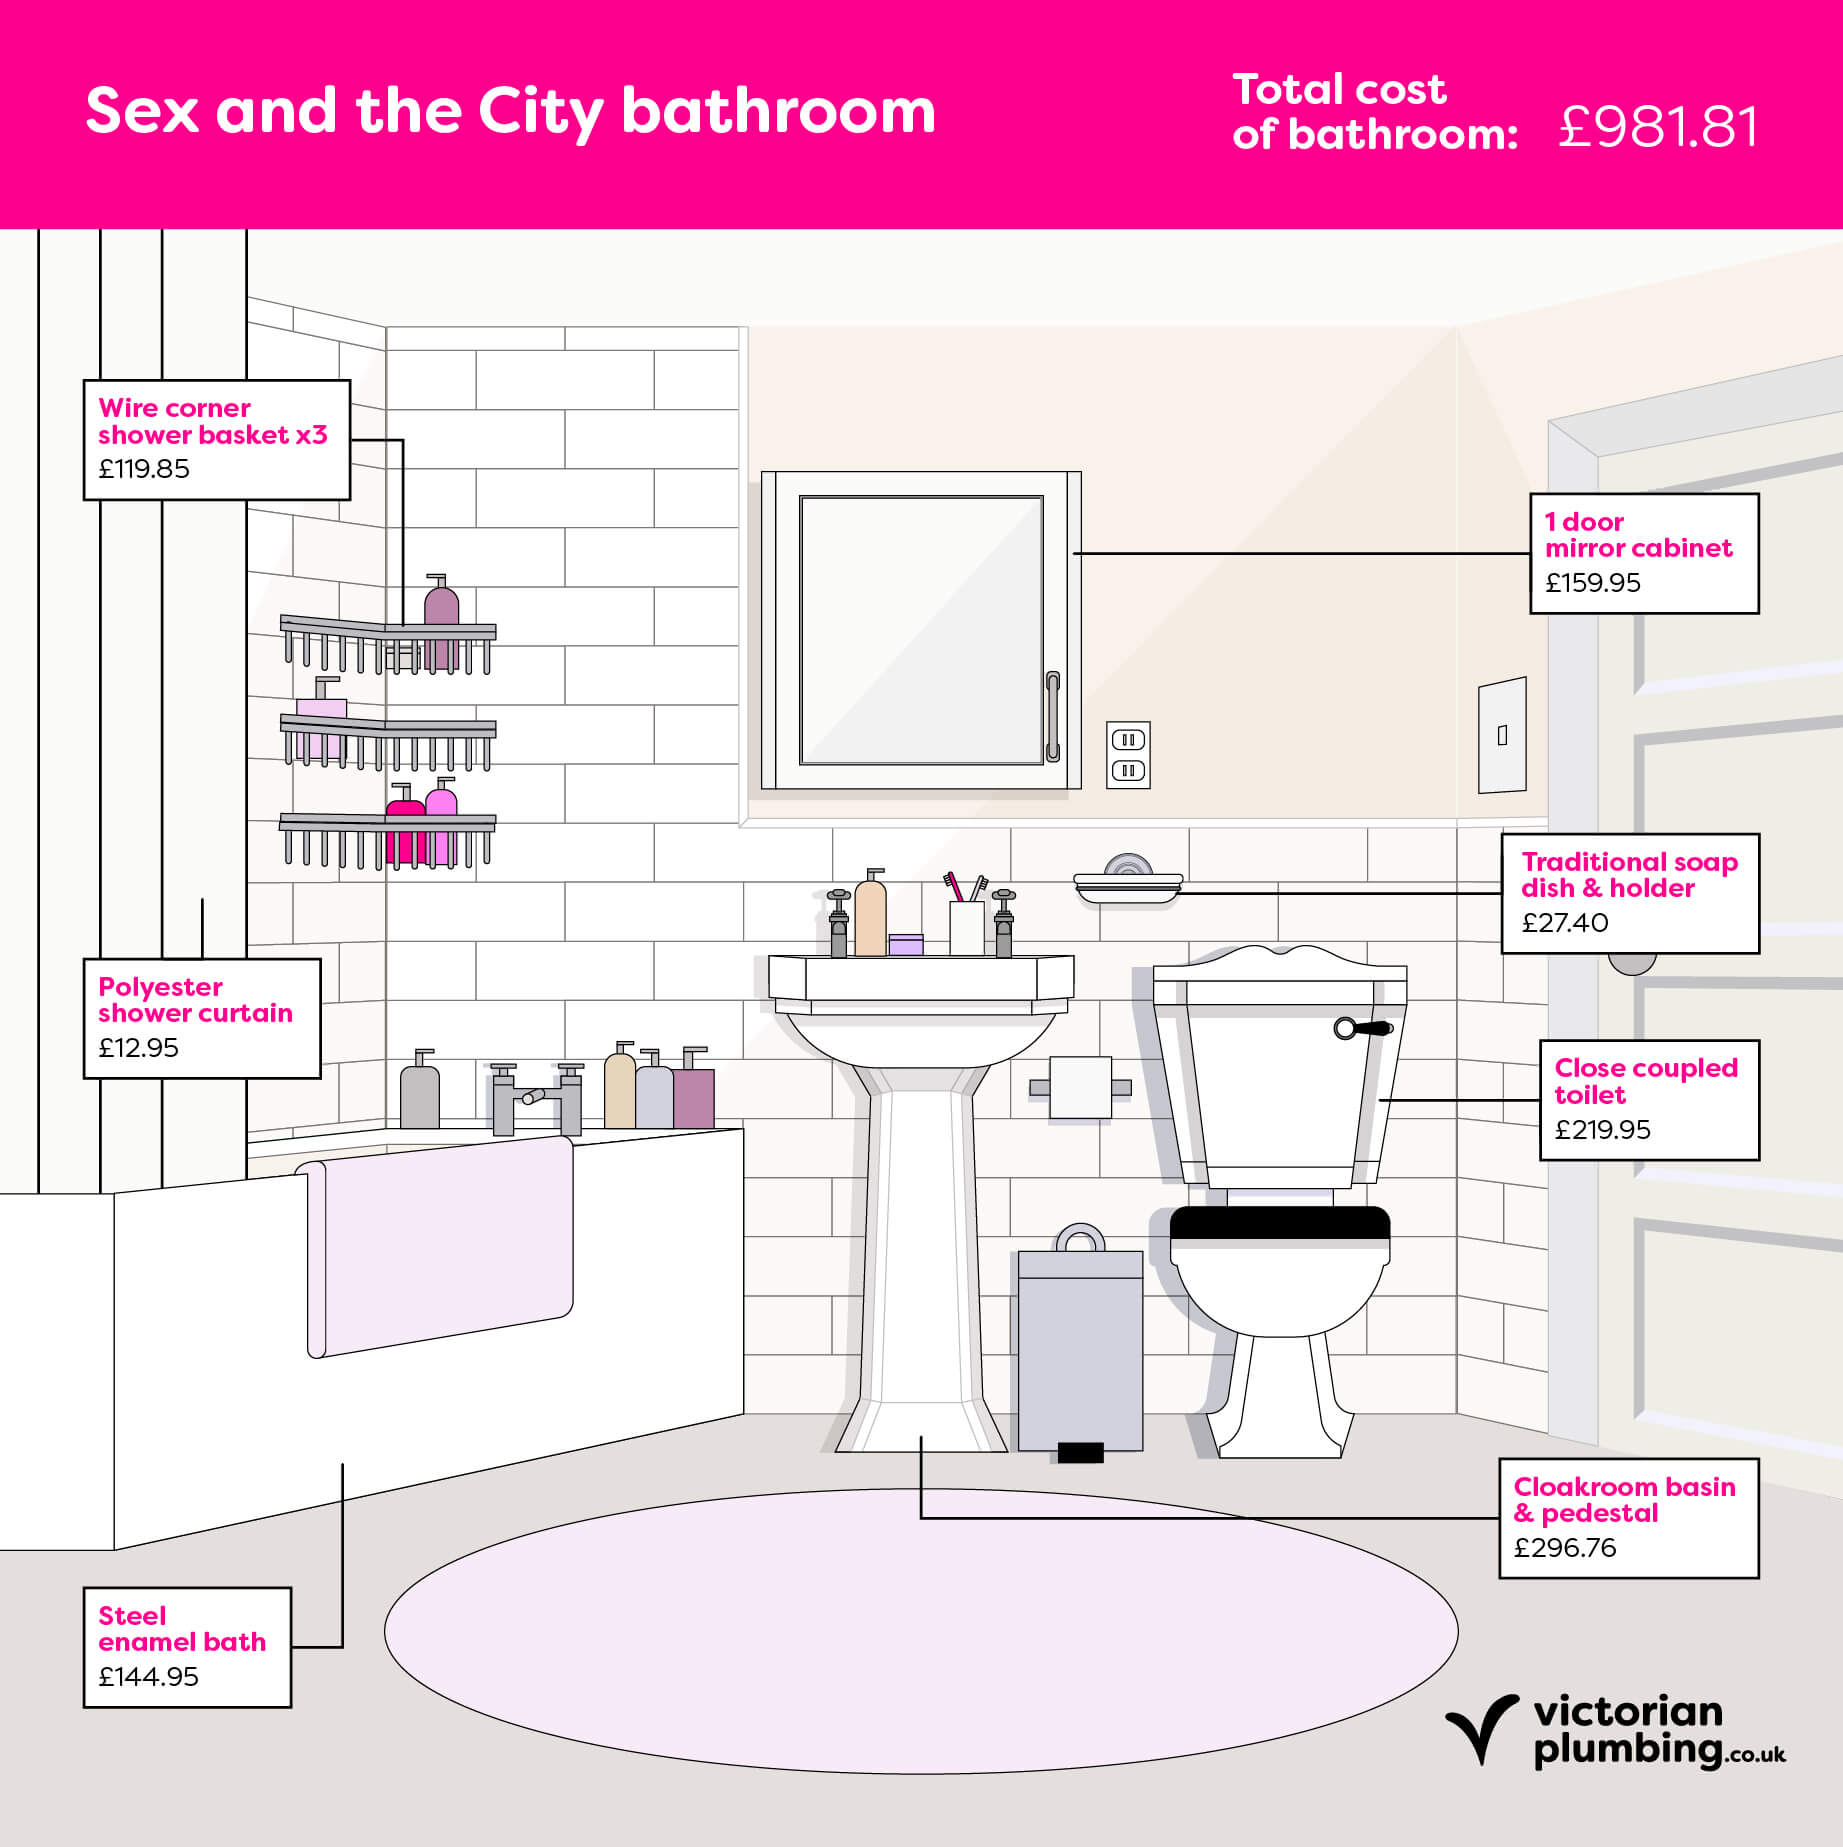 Fictional Bathrooms: Sex and the City